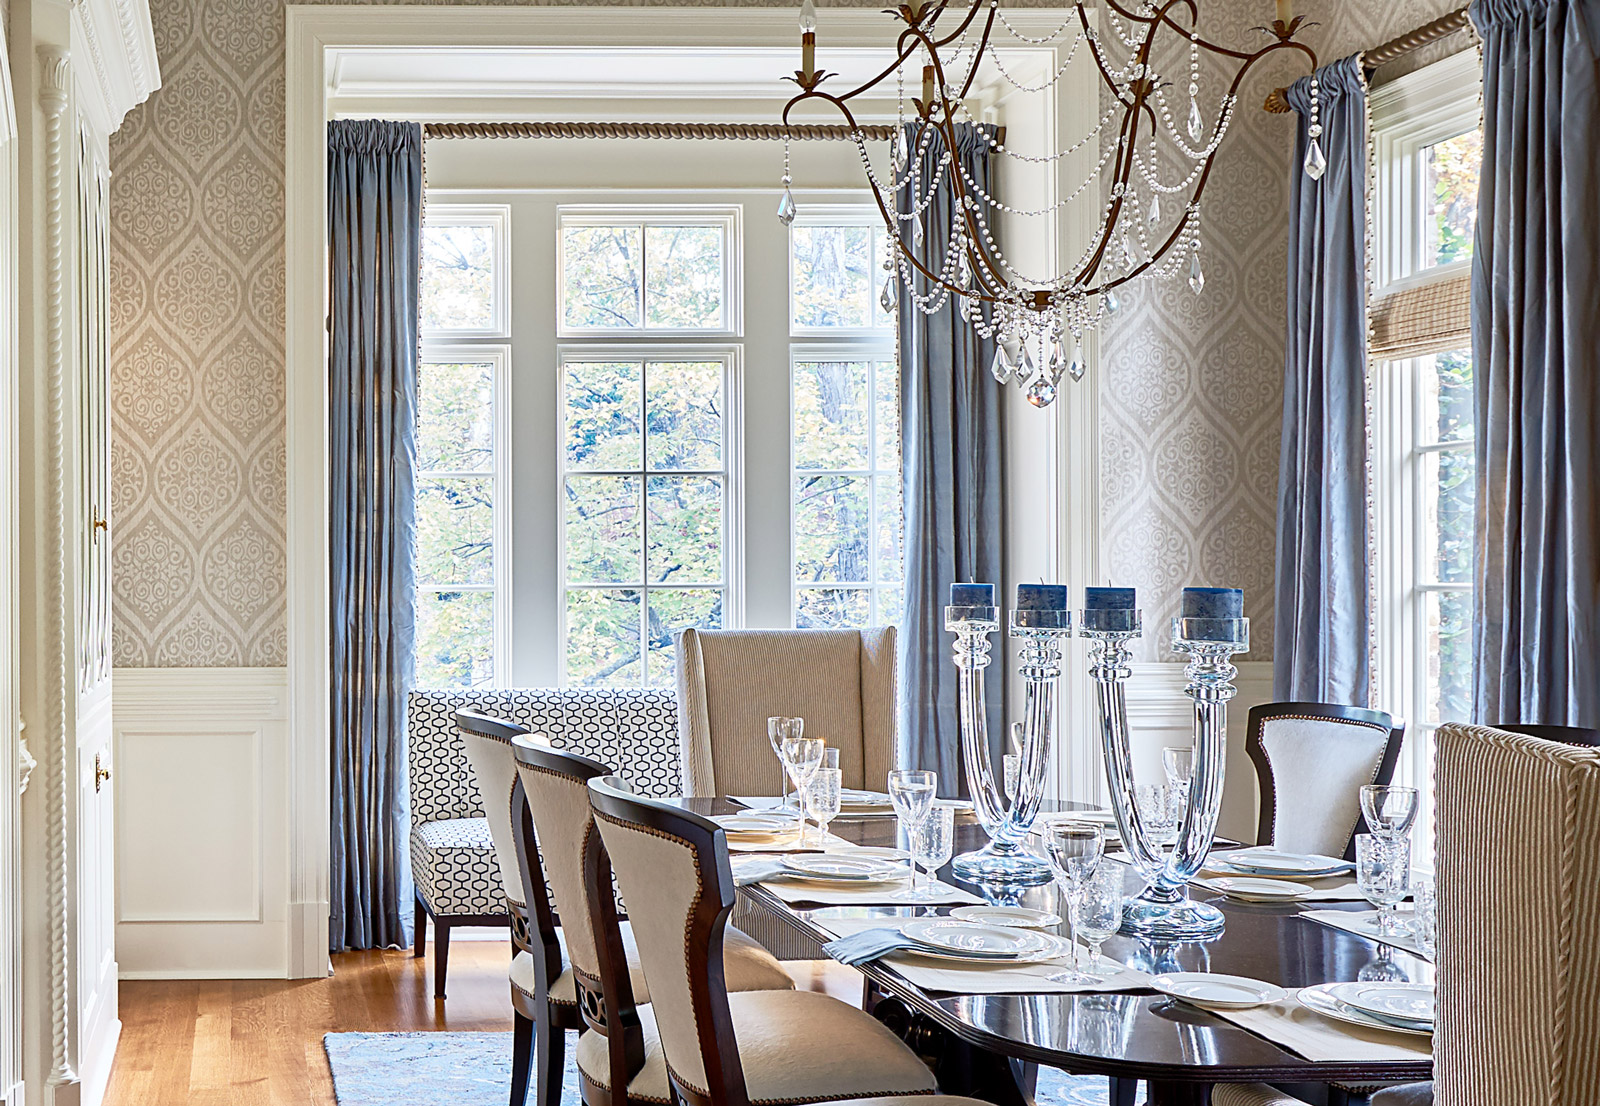 Beautiful interior design in formal dining room with crystal chandelier, beige seating and blue curtains